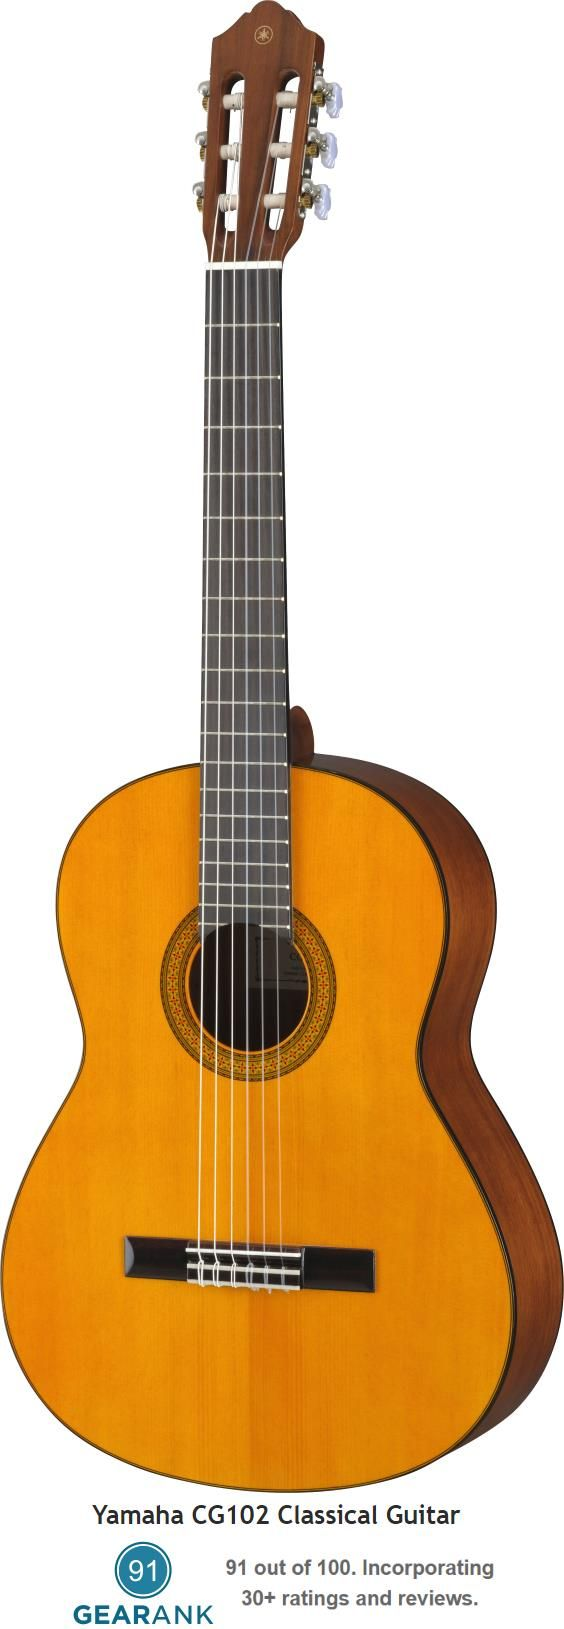 The Yamaha CG102 is the lowest priced classical guitar offered by Yamaha (not counting the C40 nylon string student guitar) and has a street price of $199.99. For a buying guide to Classical & Nylon String Guitars see https://www.gearank.com/guides/nylon-string-guitar